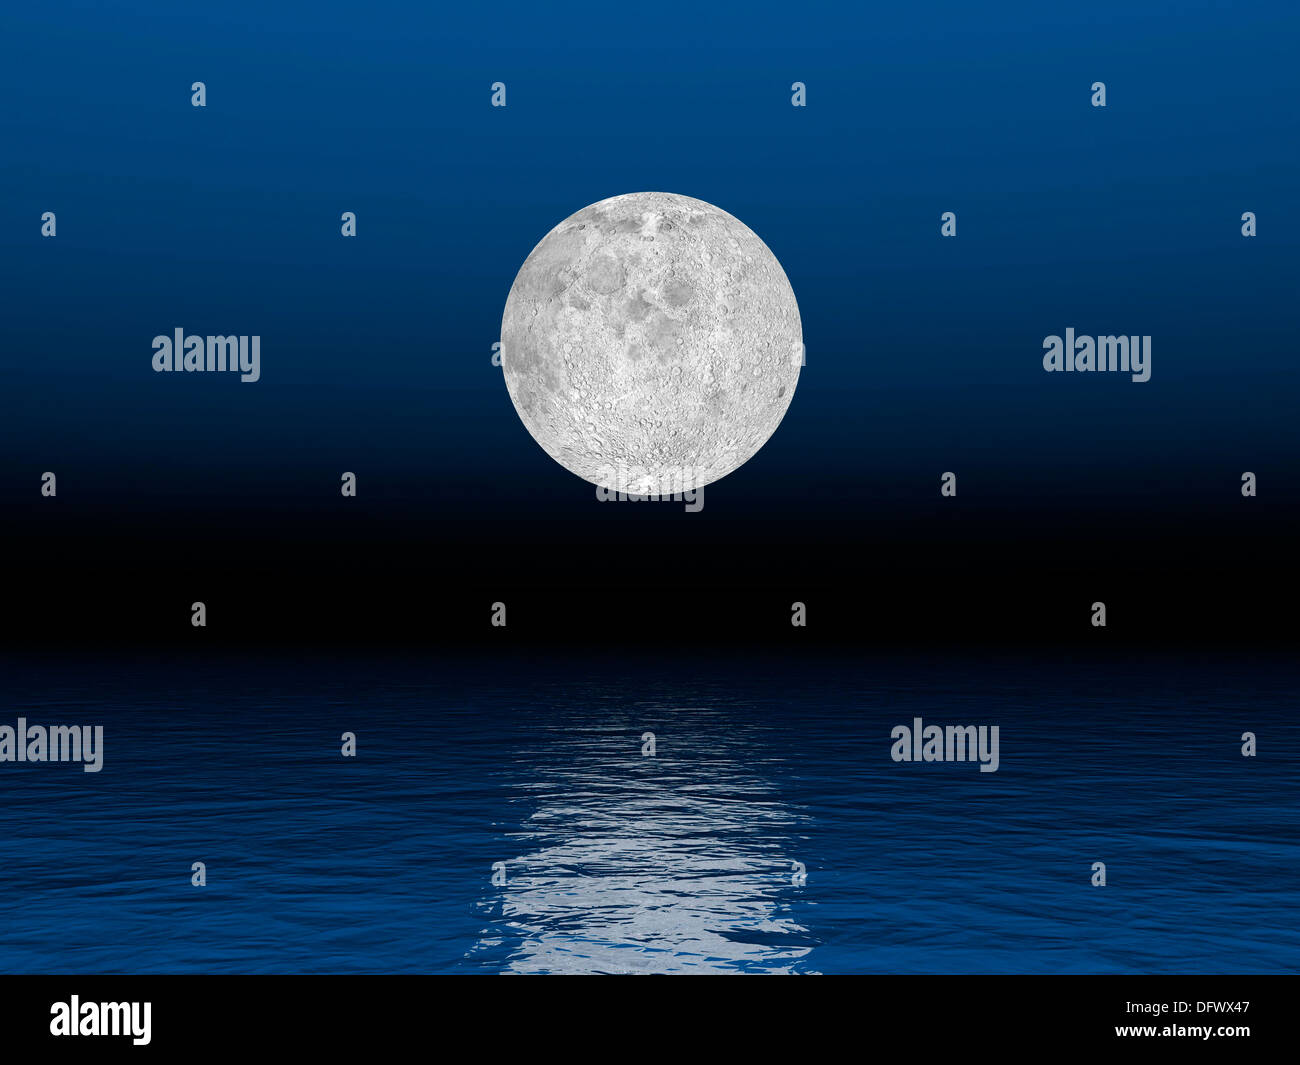 Beautiful full moon against a deep blue sky over the ocean. - Stock Image